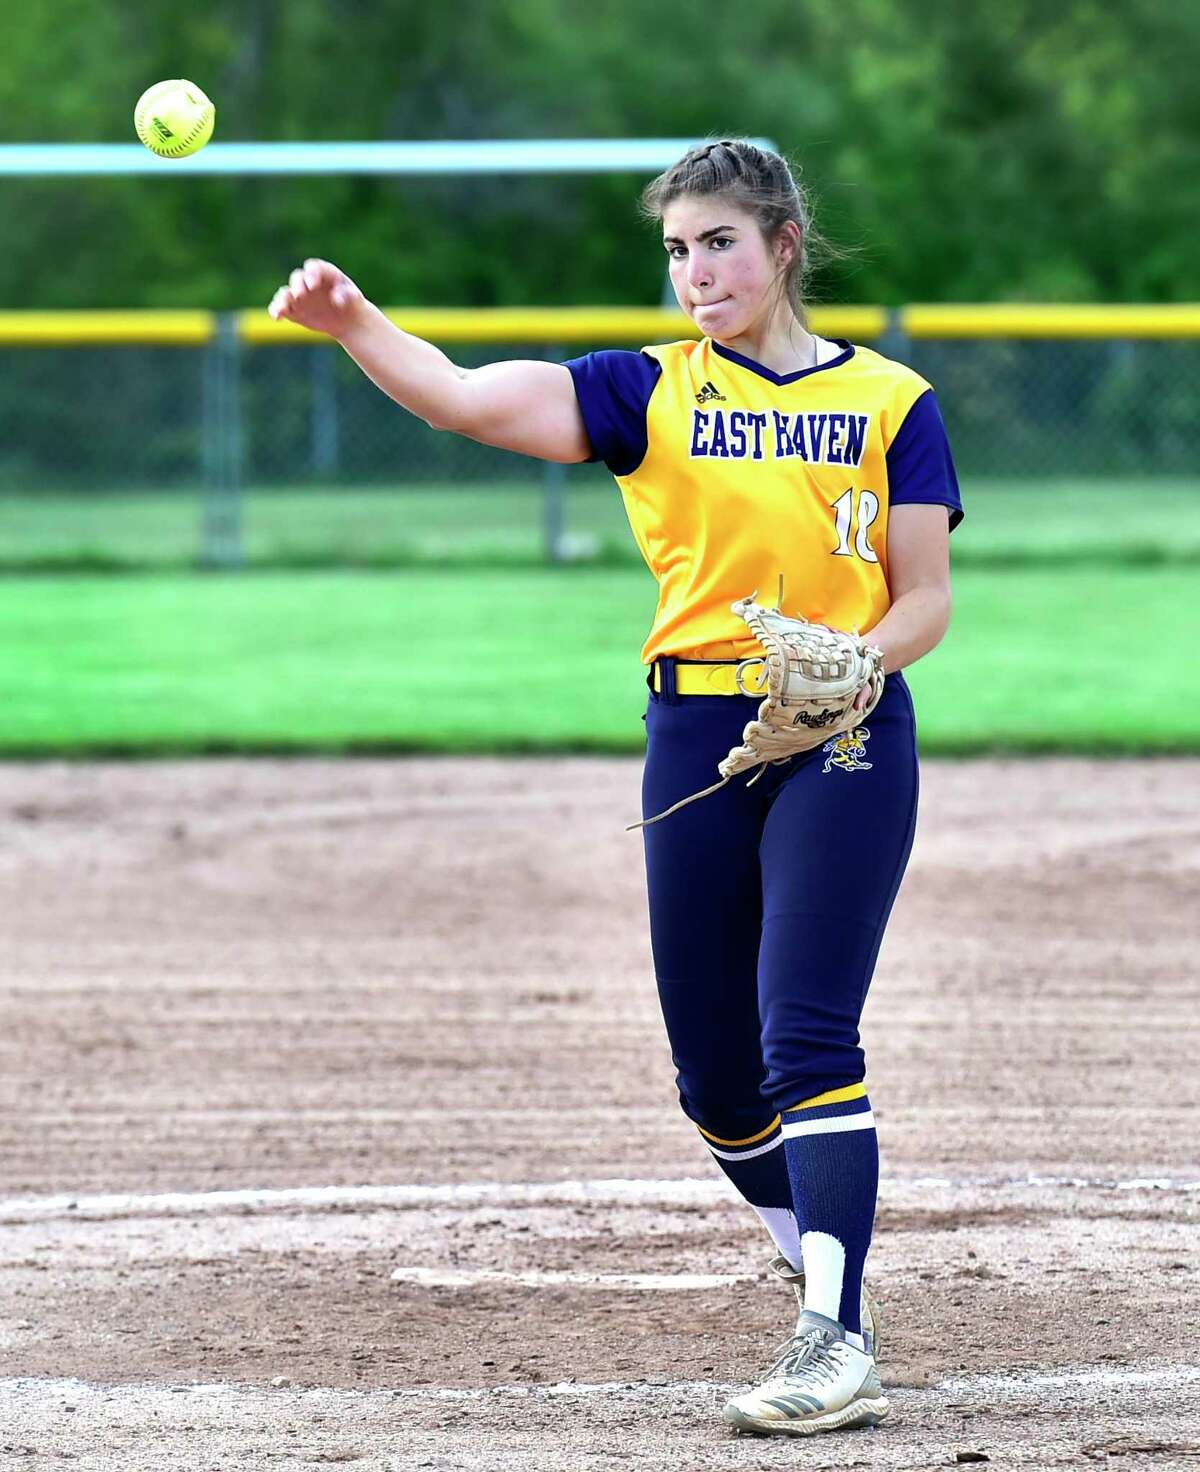 East Haven pitcher Tory Heaphy in action against Cheshire on Tuesday.